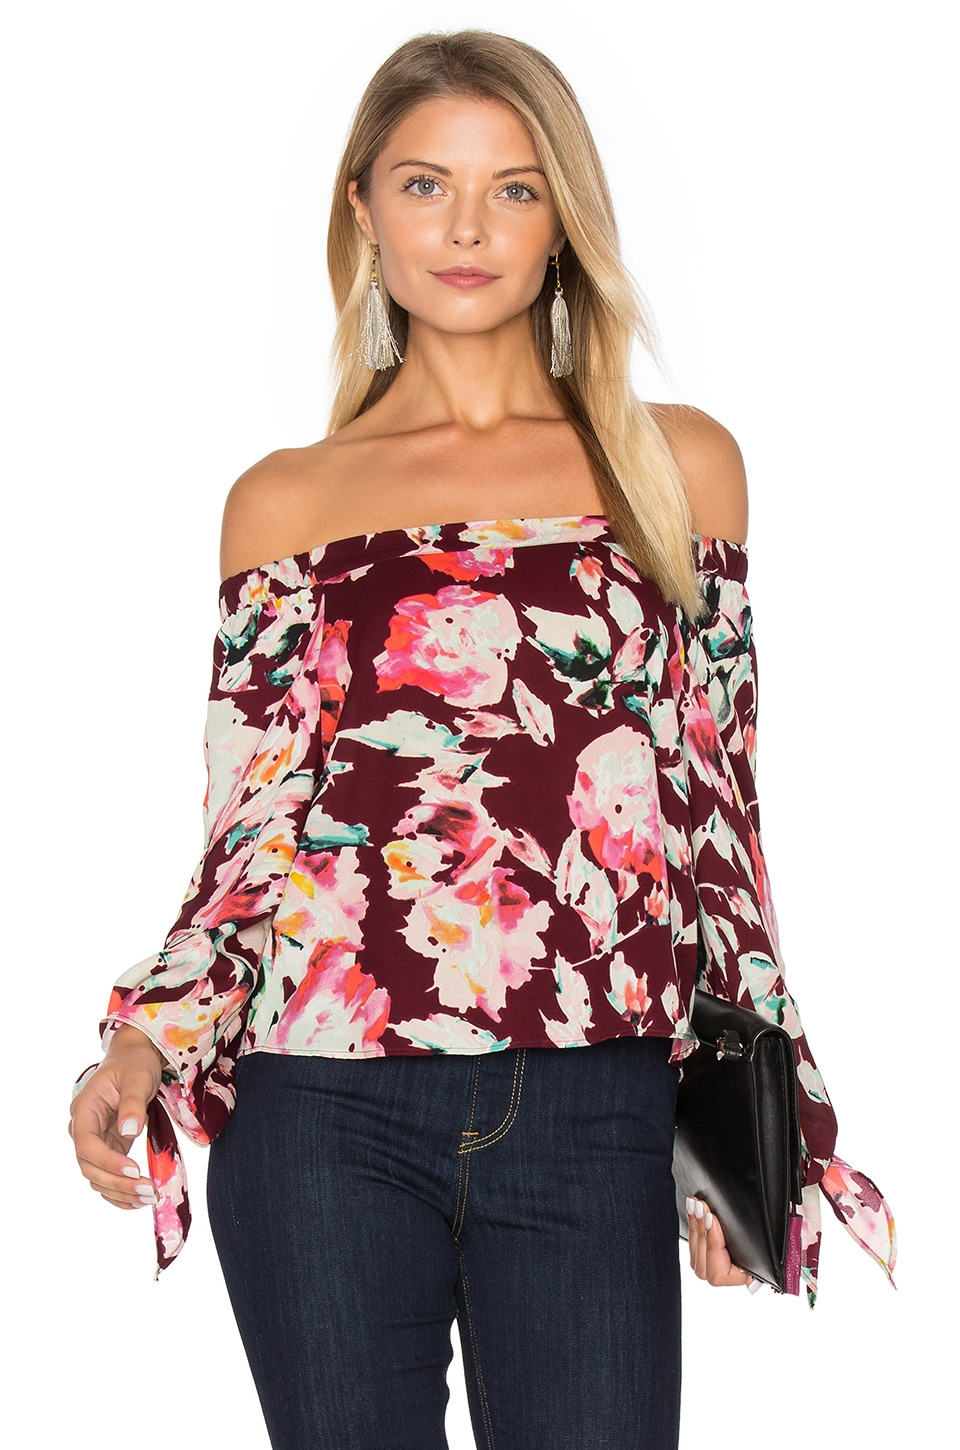 Eight Sixty Off The Shoulder Blouse in Merlot